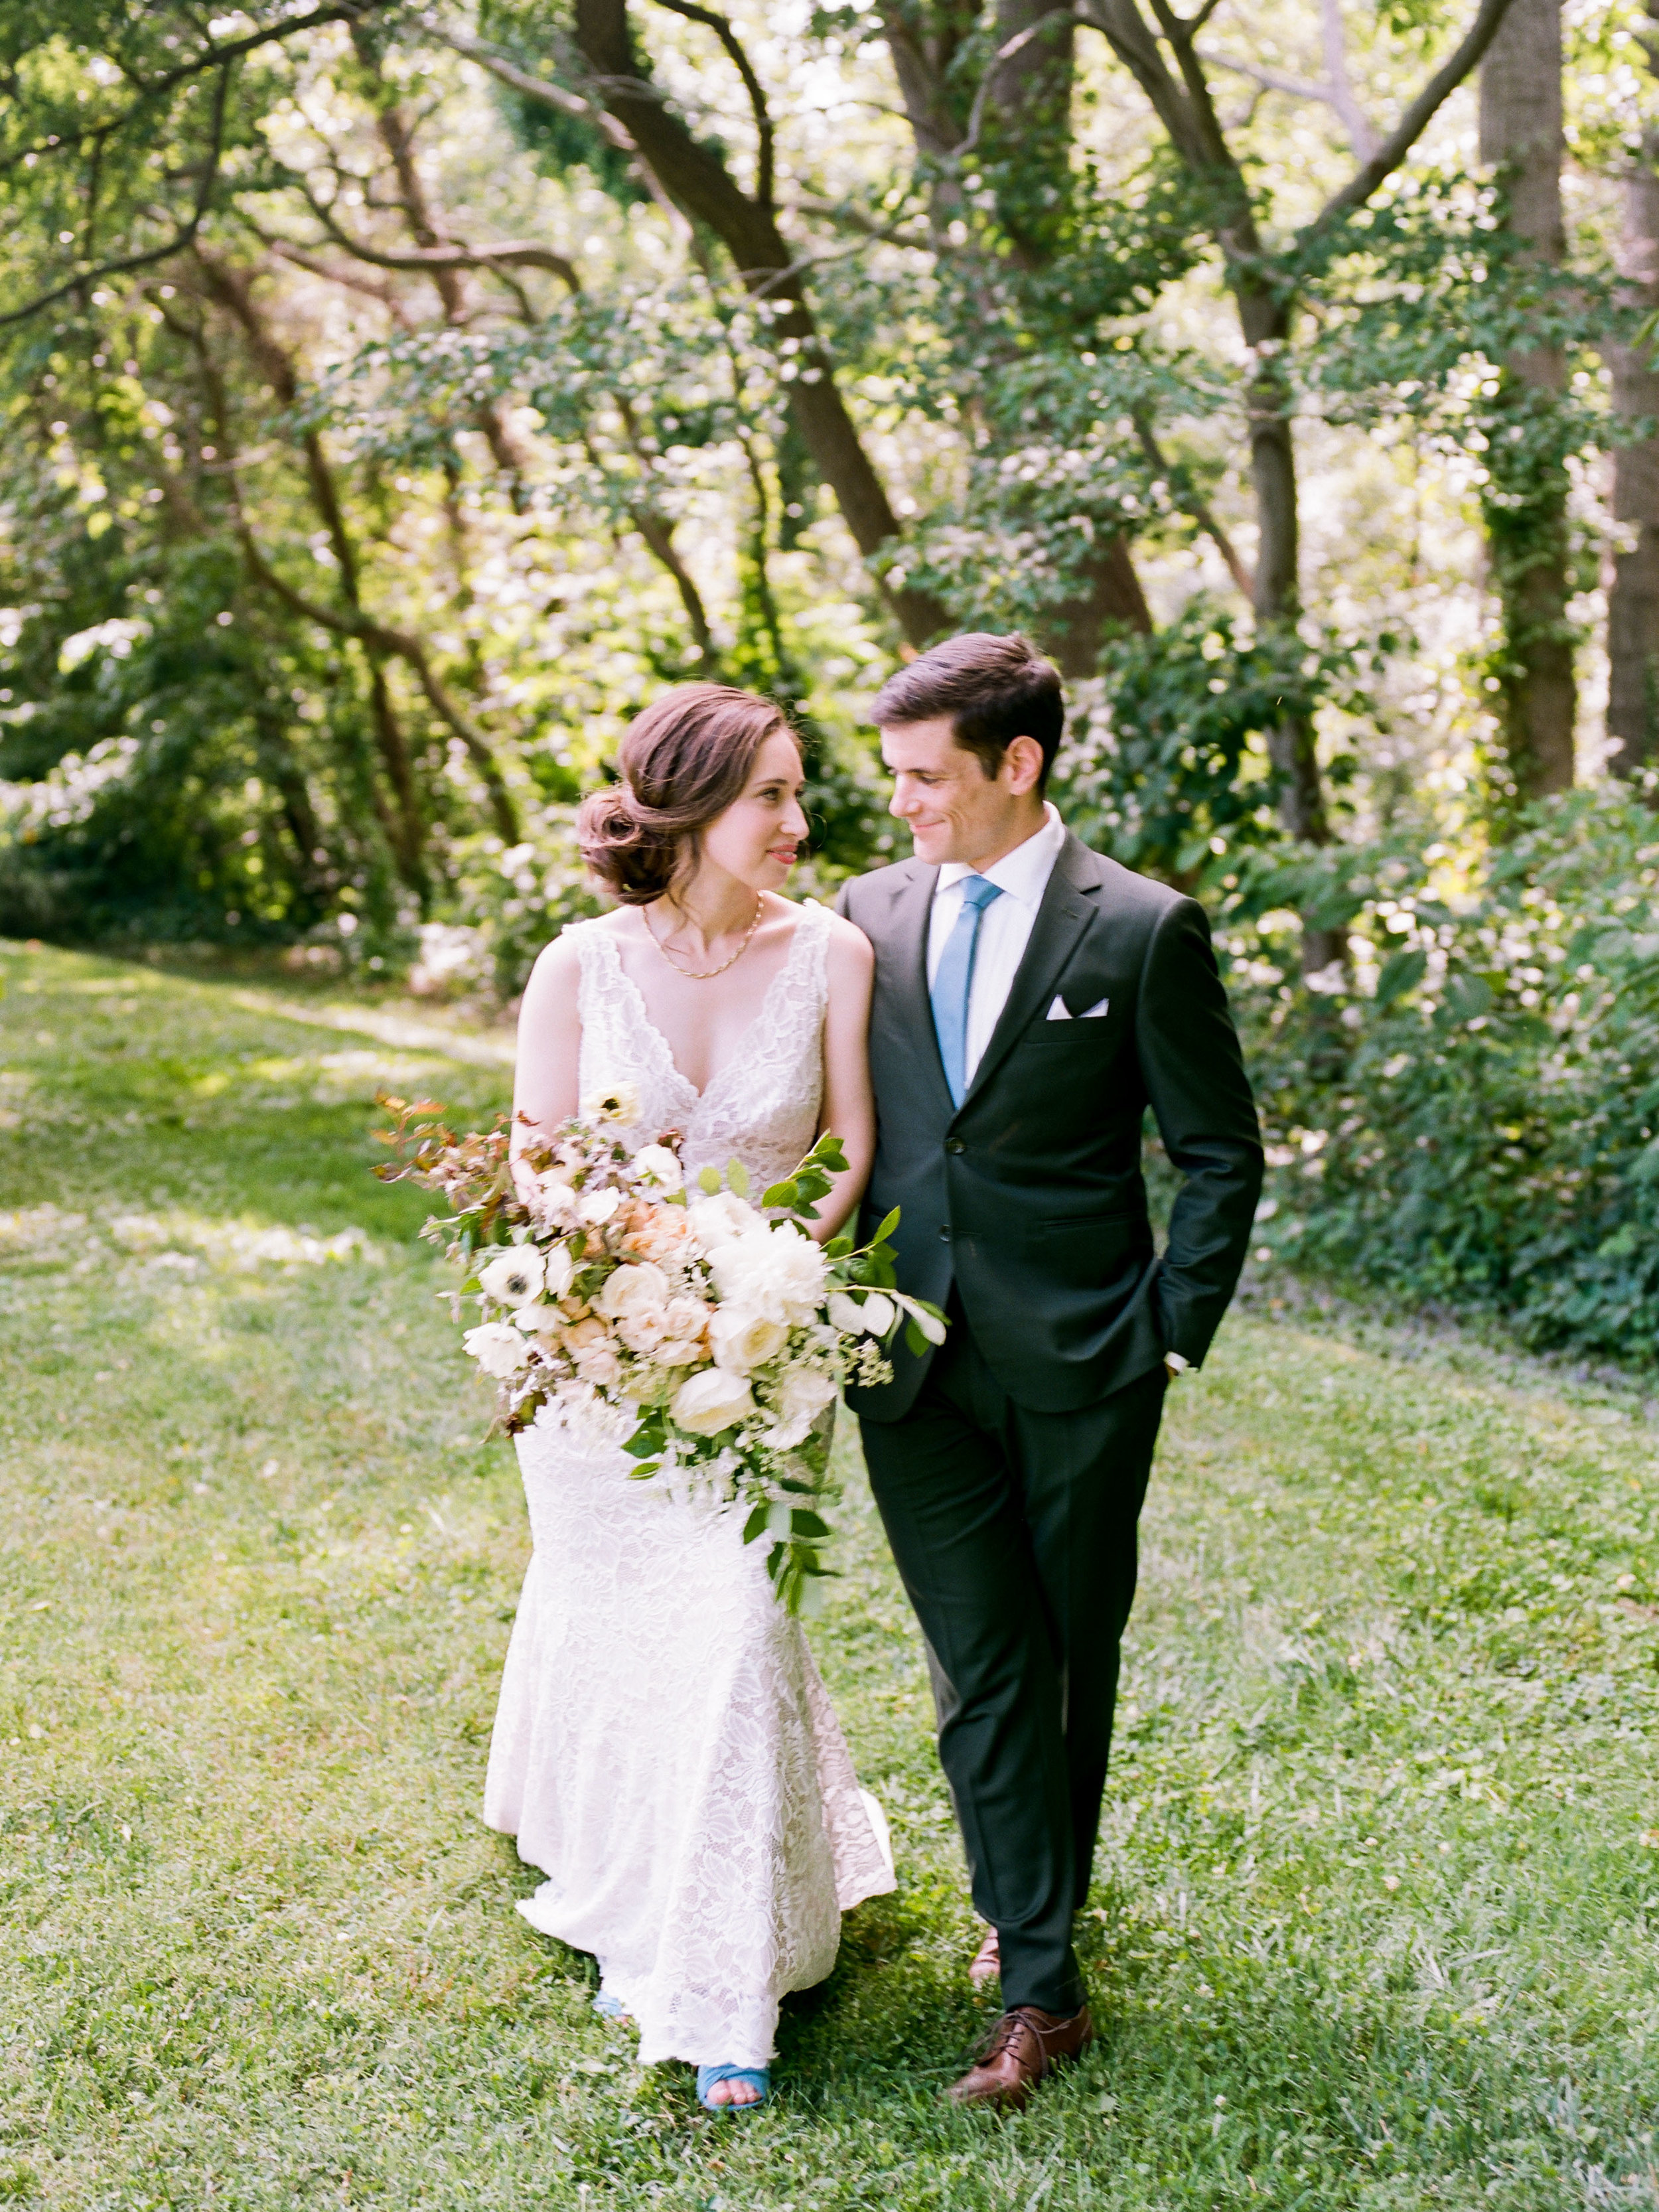 Intimate Summer Wedding at River Farm in Alexandria, Virginia by fine art wedding photographer Lissa Ryan Photography